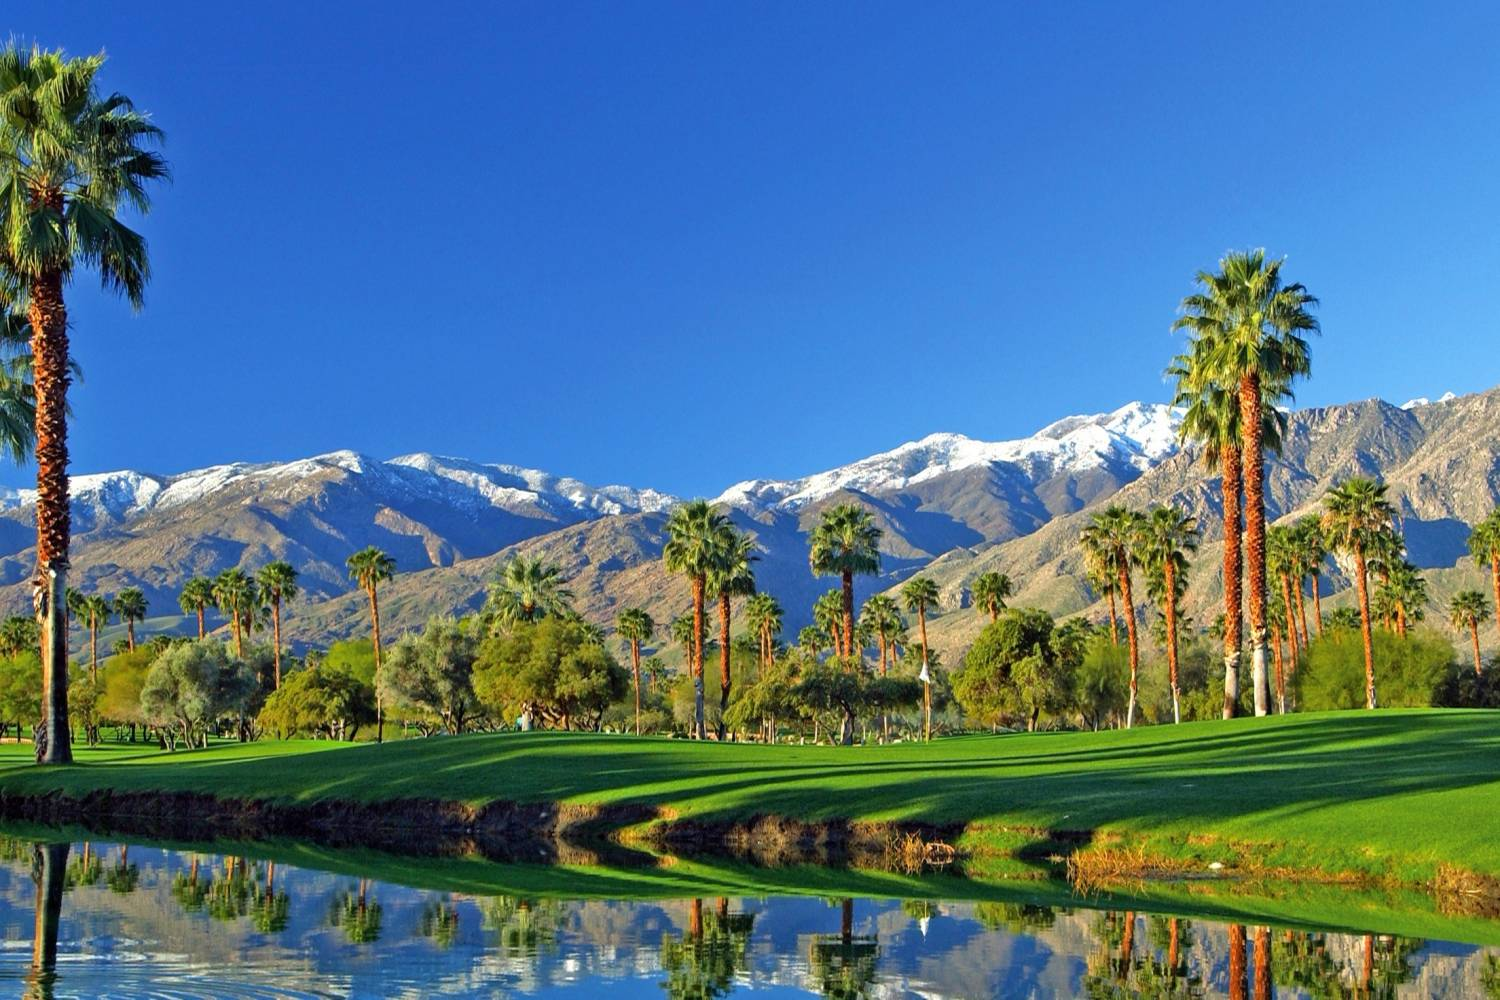 palm springs golf course.jpg